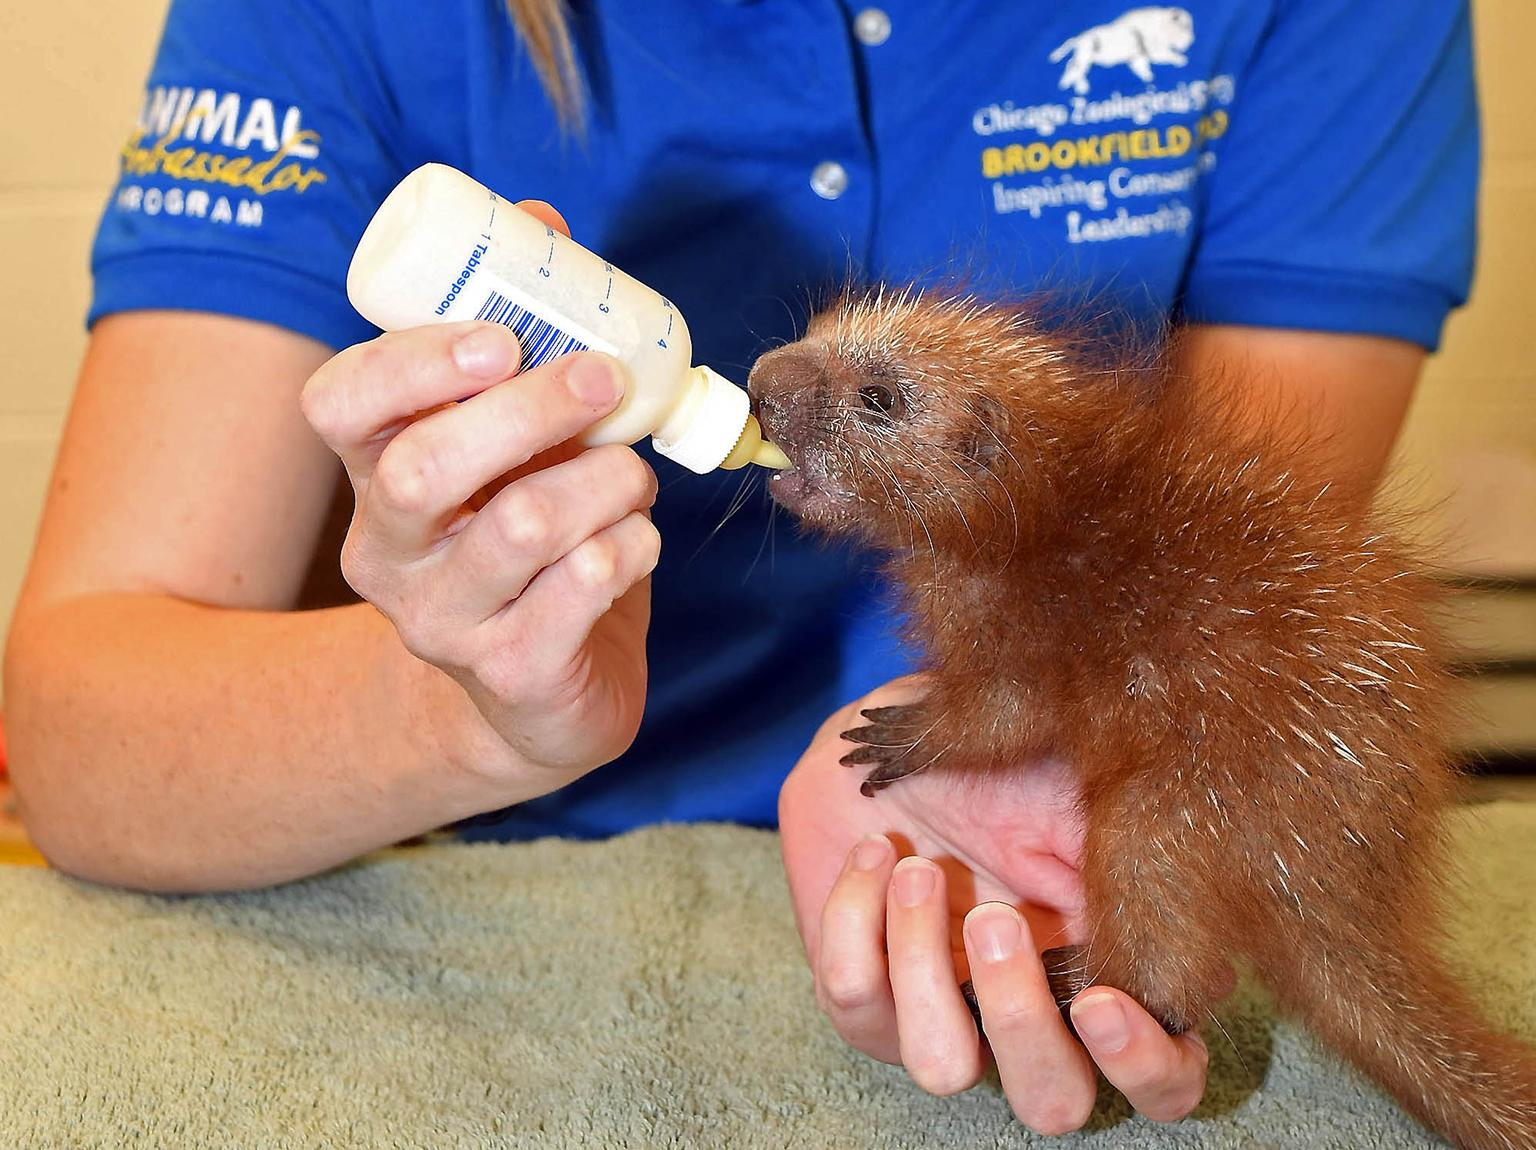 A baby prehensile-tailed porcupine was born at Brookfield Zoo last month. The porcupine is being hand-reared by the zoo's animal care staff. (Jim Schulz / Chicago Zoological Society)